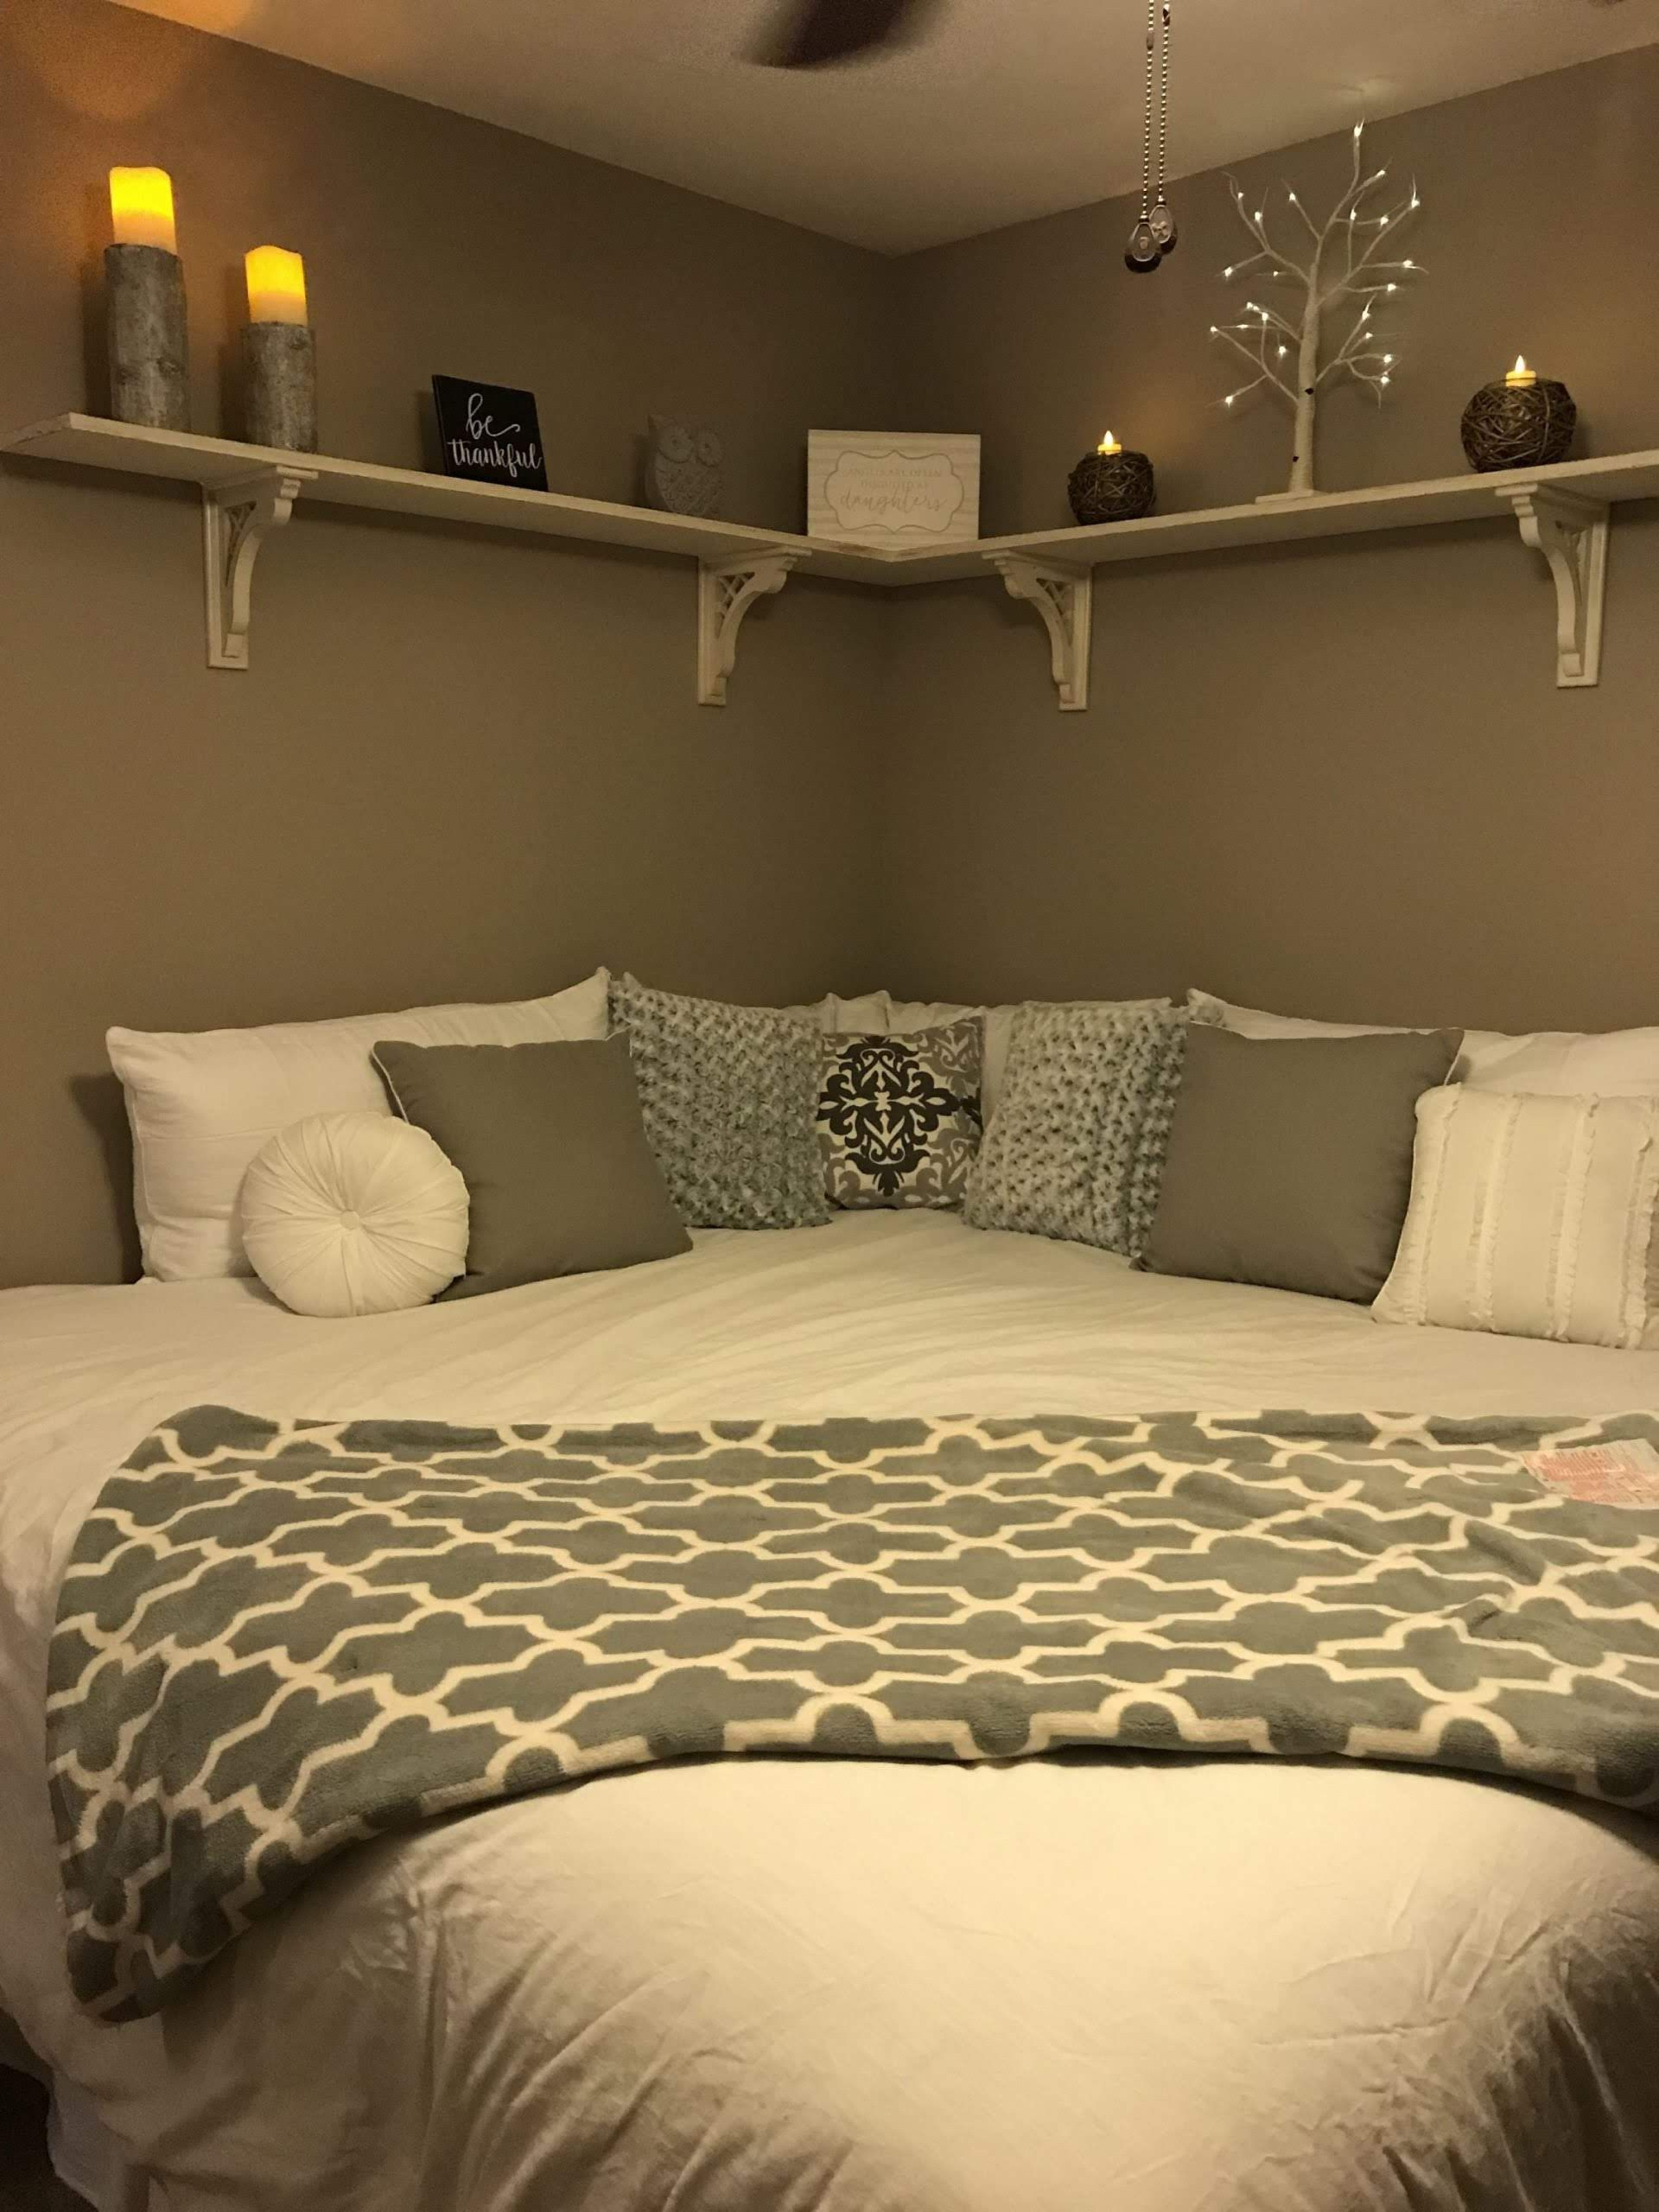 The 10 Best Bed Without Headboard Ideas In 2020 Small Room Bedroom Remodel Bedroom Bedroom Layouts